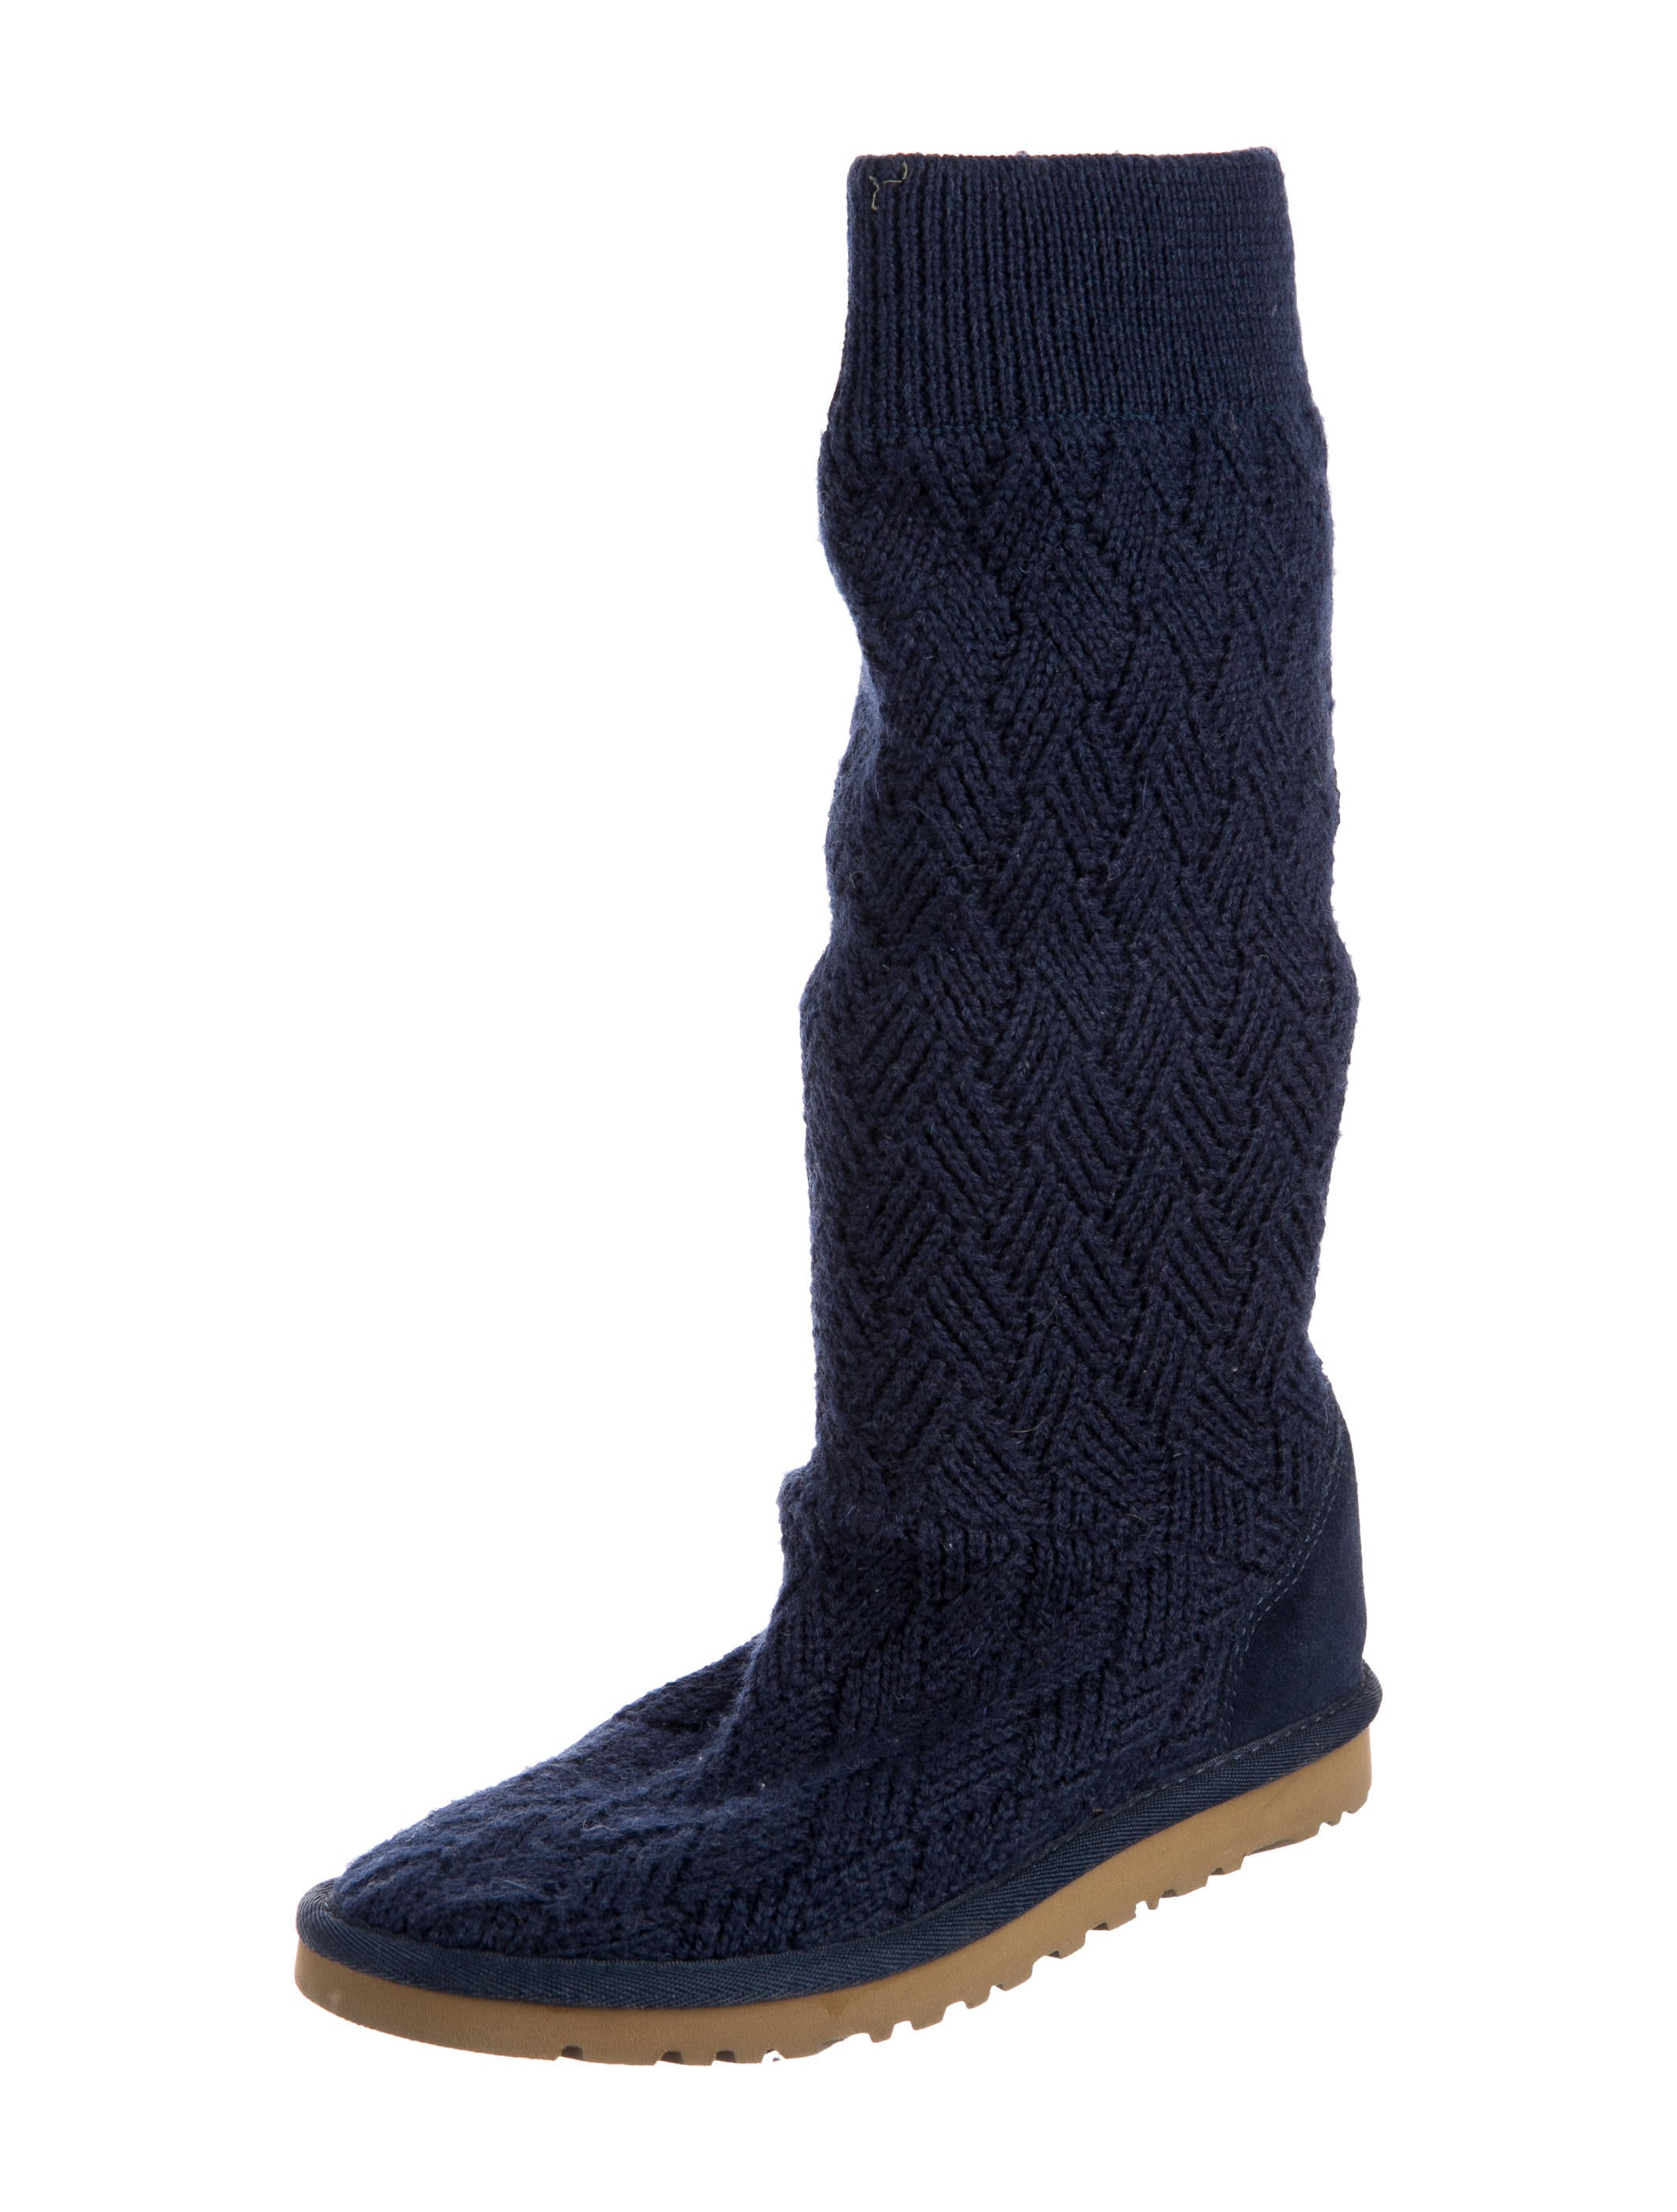 ugg australia knit knee high boots shoes wuugg23310